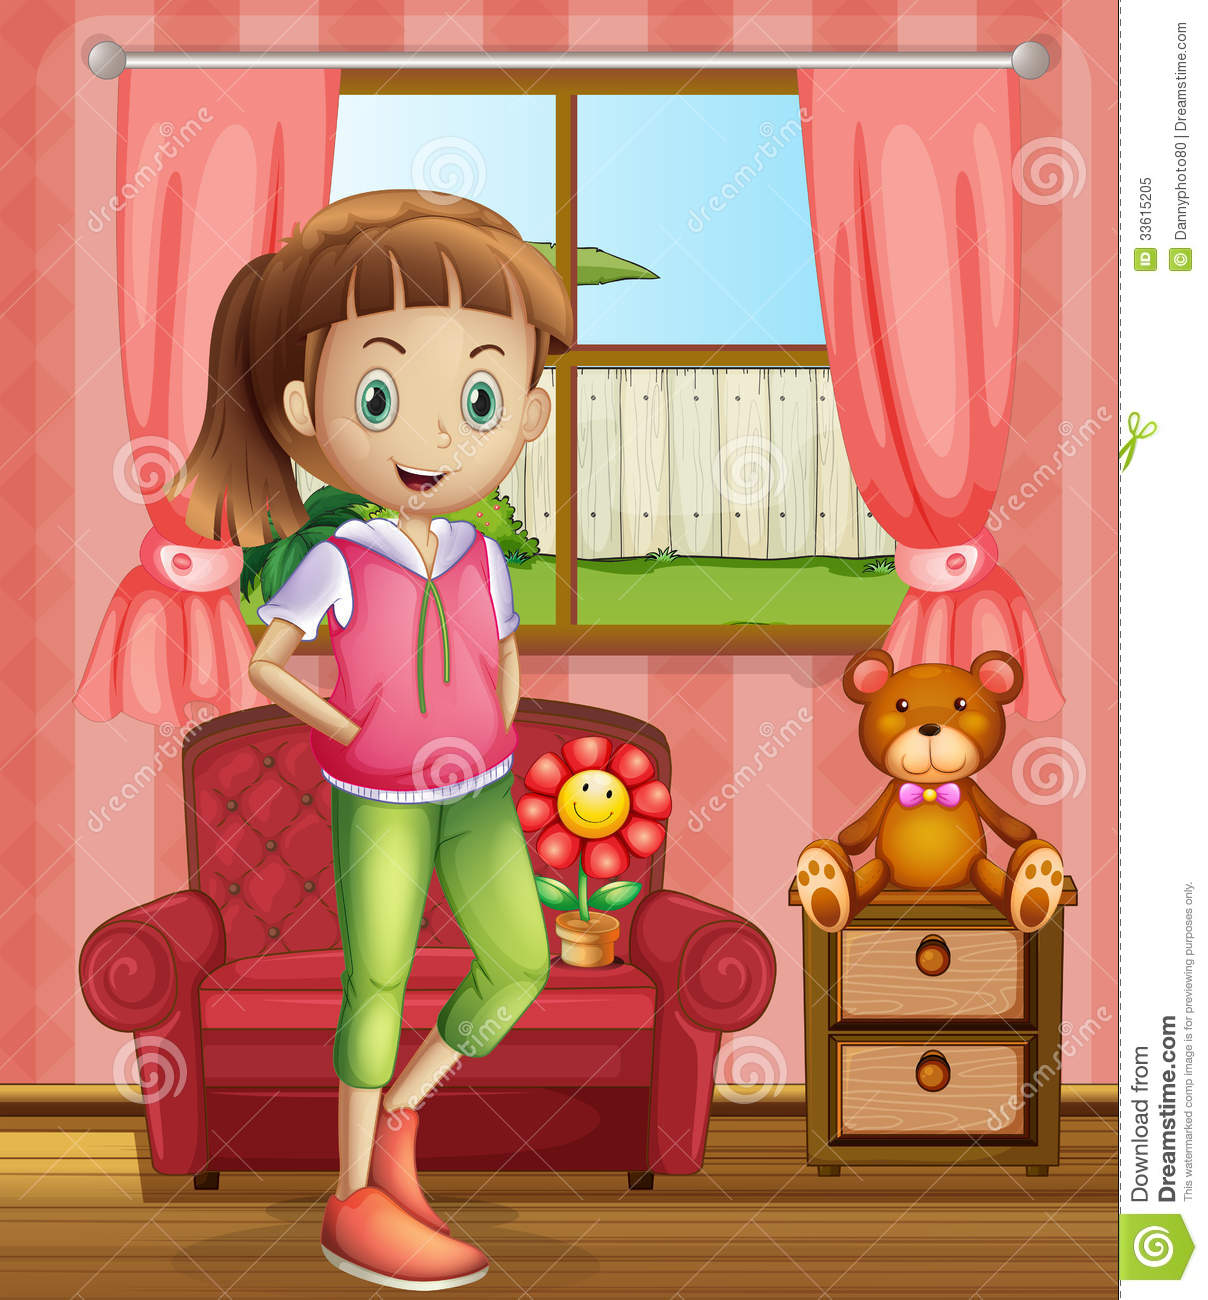 A Cute Young Girl Inside The House Royalty Free Stock ...